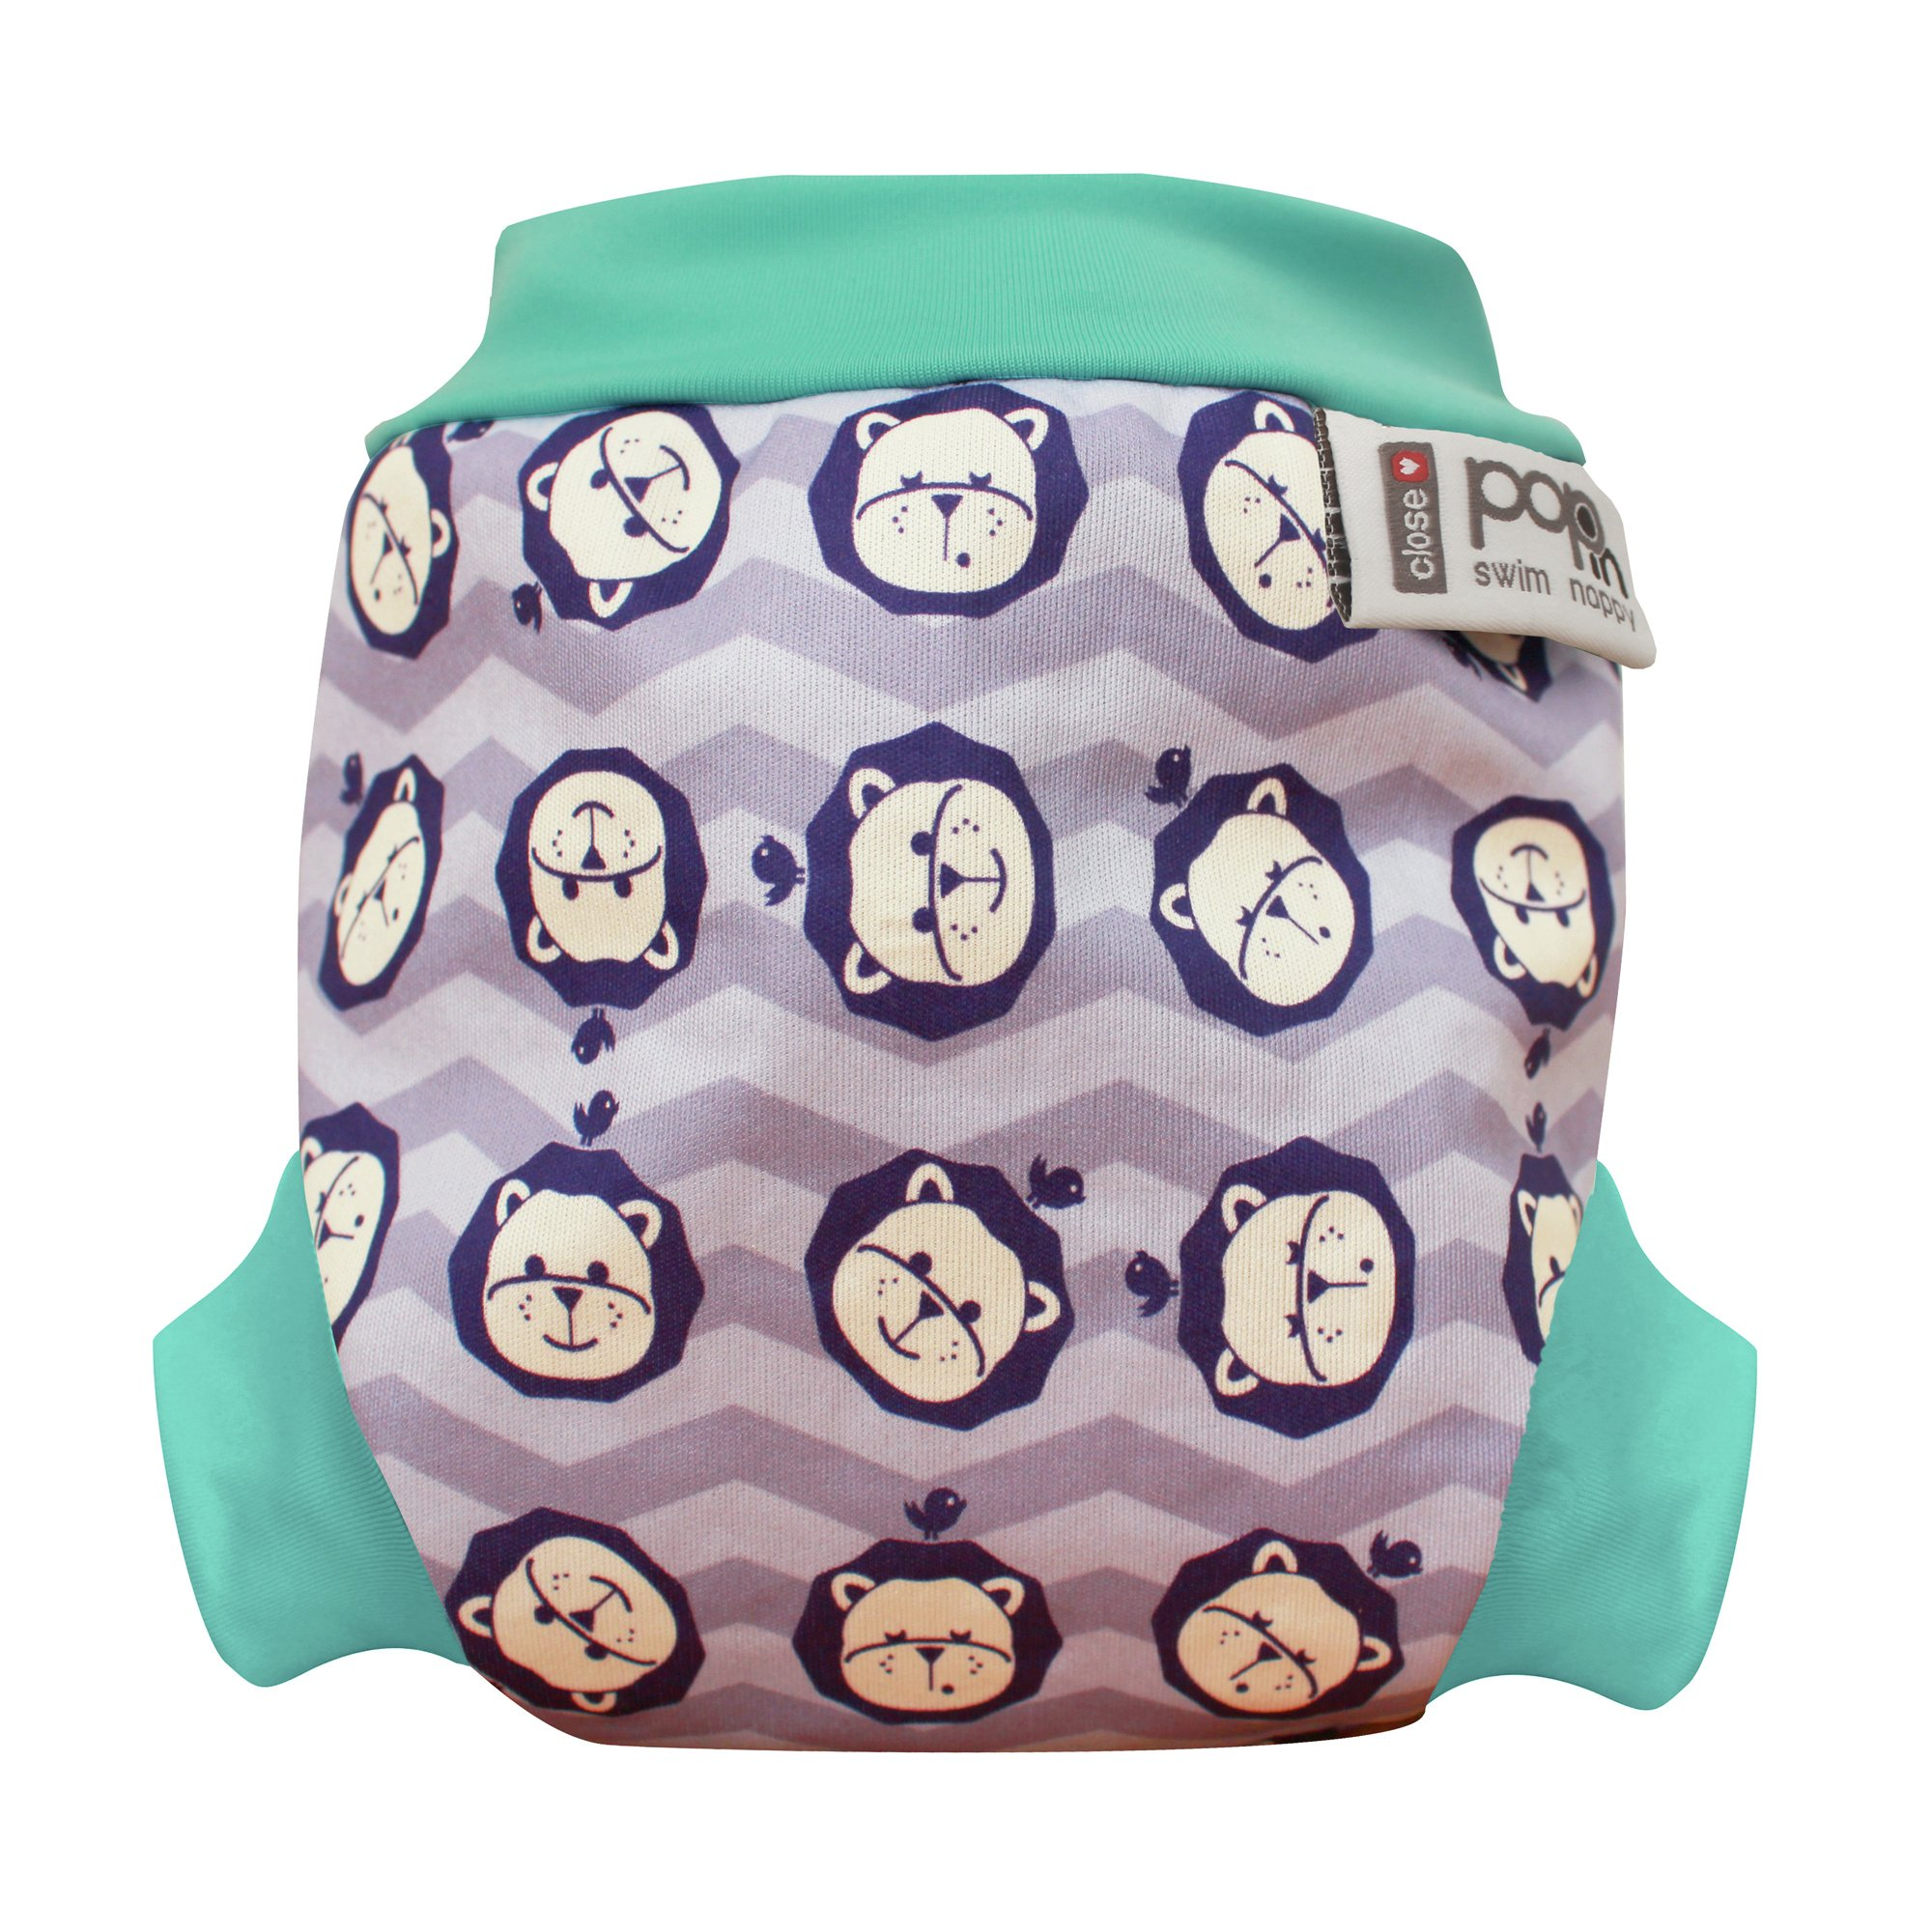 Image of Pop In - Lion Swim Nappy - Extra Large